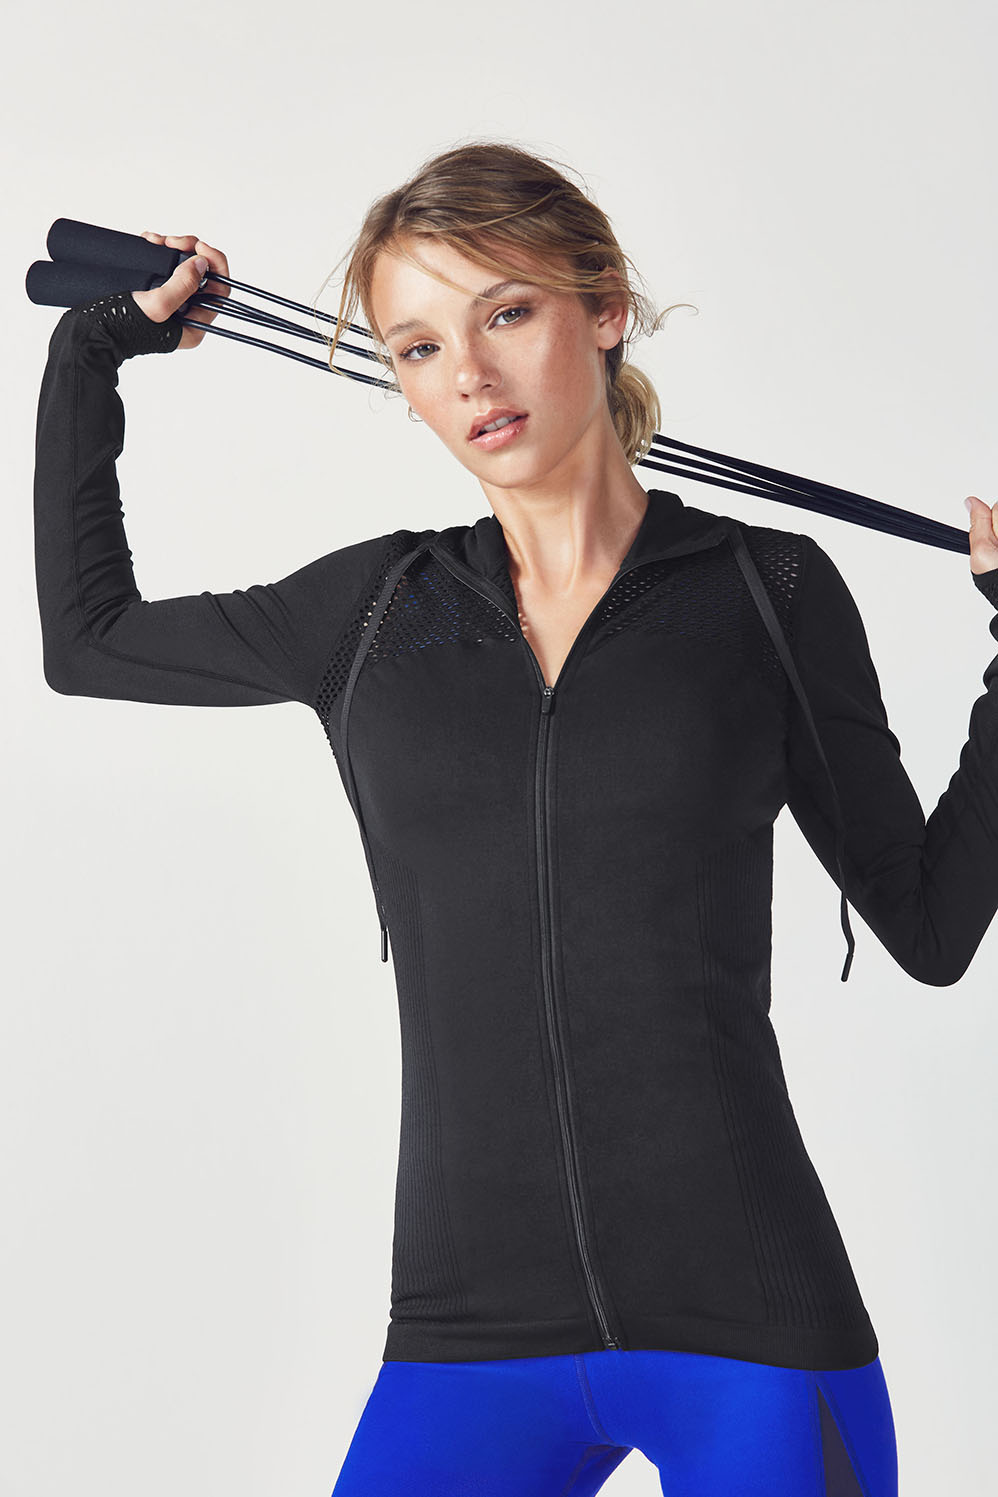 Fabletics Hoodies Mona Hoodie Womens Black Size XXS Get hooked on a hoodie with a seamless second-skin feel, cool multi-texture design and built-in thumbholes. If that's not convincing enough, it's built with fabric that fights sweat like a champ. Built-In Thumbholes, Multi-Texture Paneling, Zipper Closure, Moisture-Wicking, Seamless Fabric, Fit. Fitted, Length. Hip, Fabric Content. 92% Nylon/8% Spandex